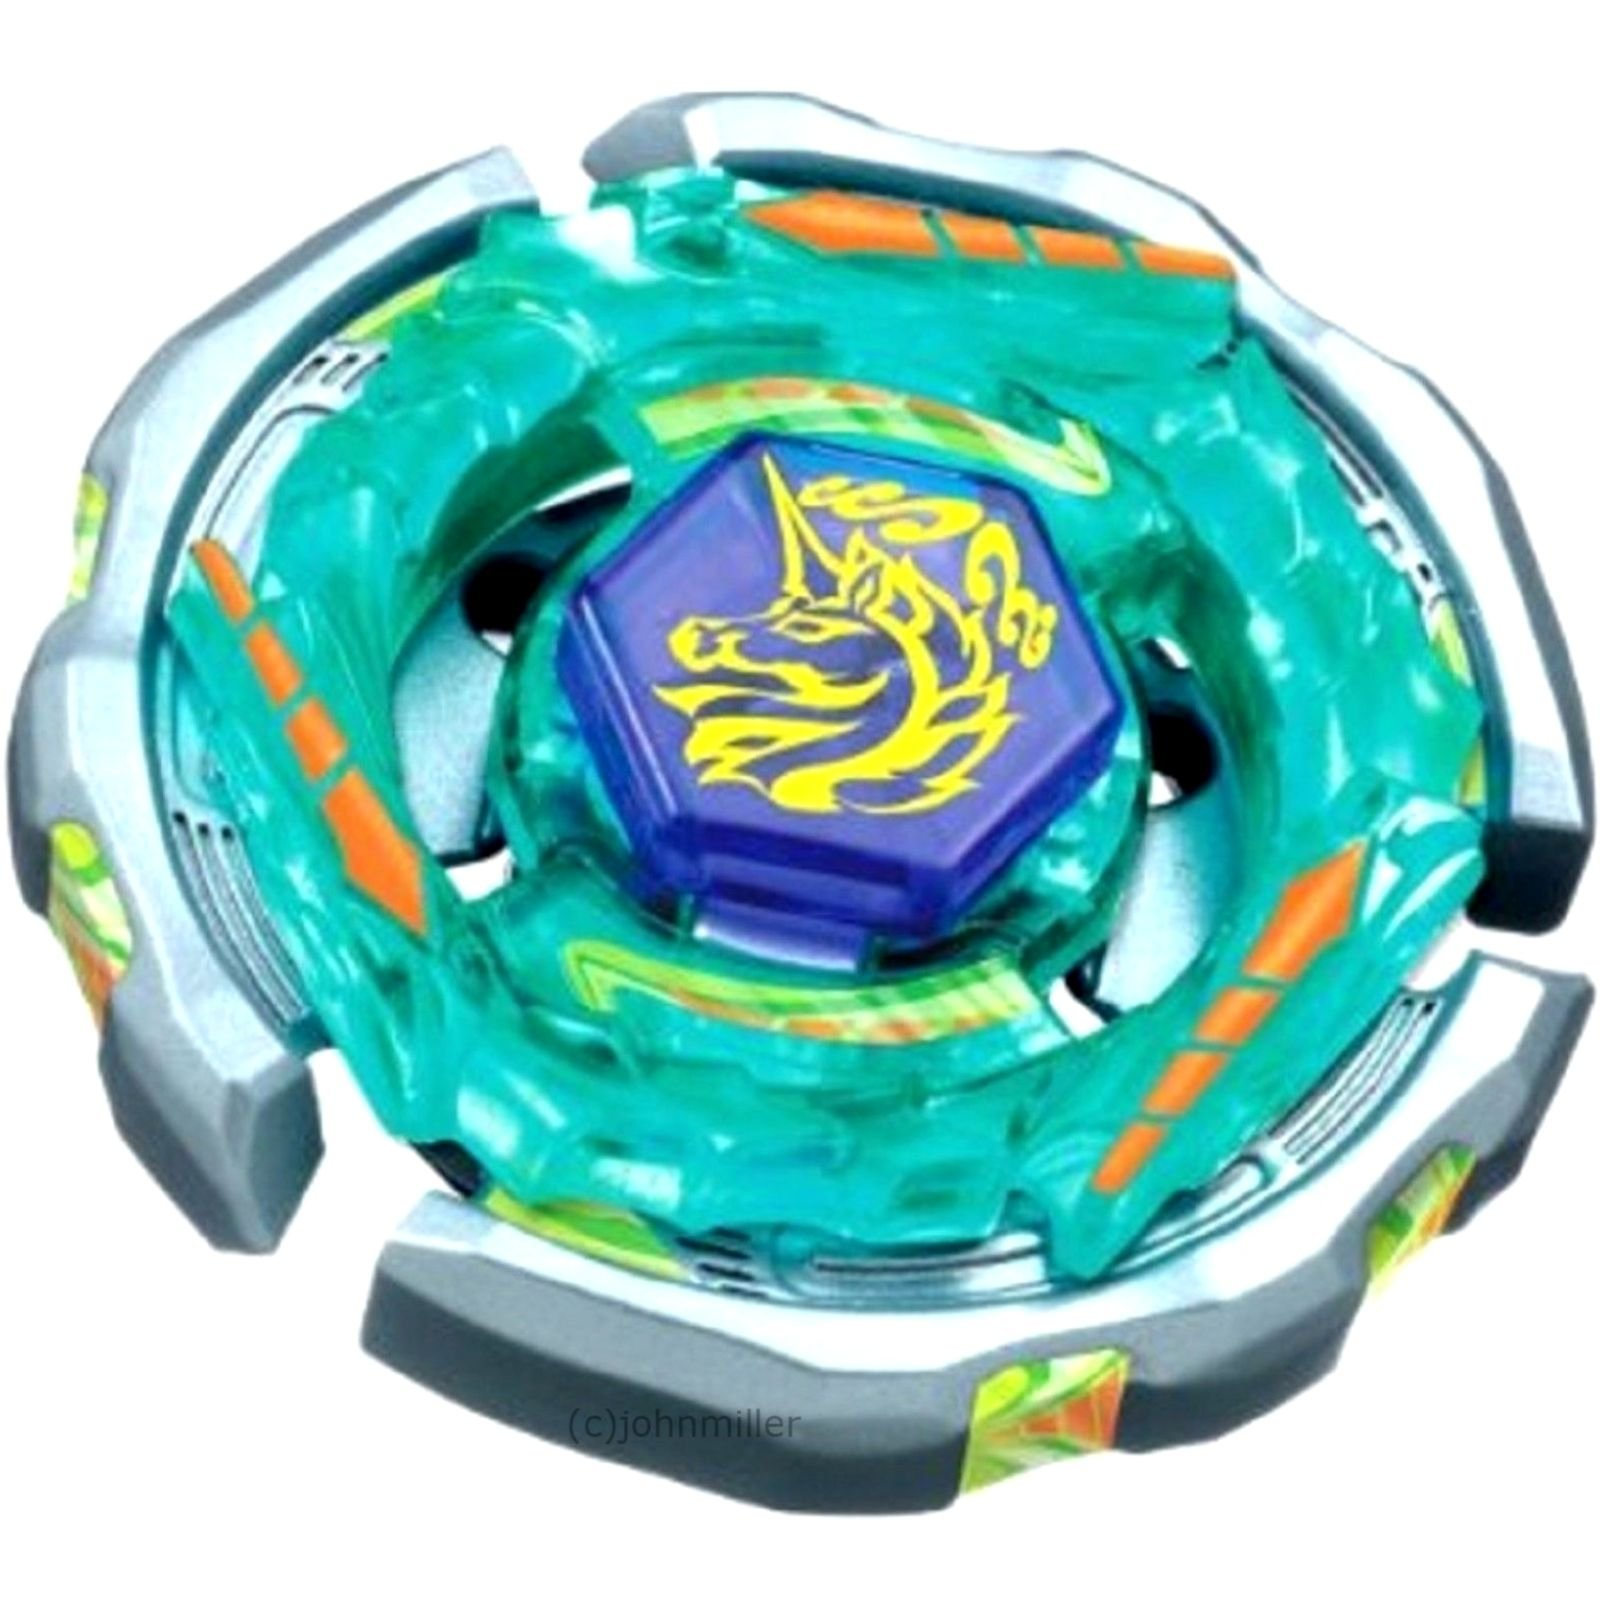 BestKept Baby Toy Kids Toy - BEYBLADE - Dark Bull Metal Fusion Beyblade BB-40 STARTER SET w/Launcher & Ripcord Toy Creative Educational Gift for Kids Boys Girls (BEYBLADE Blue)